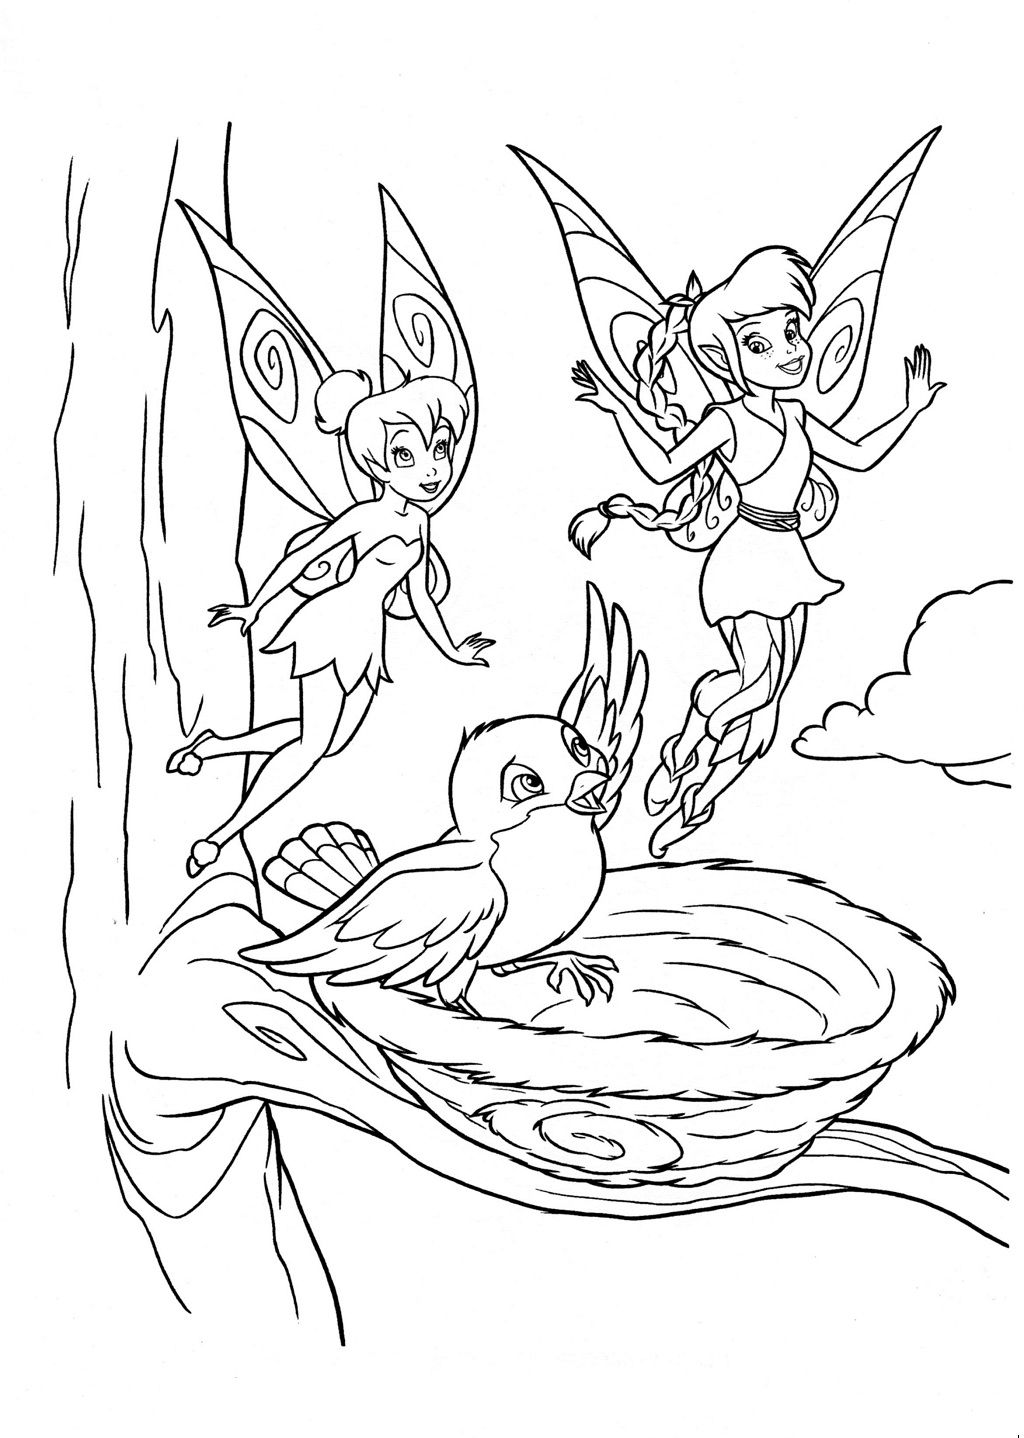 Free Printable Tinkerbell Coloring Pages Kids Tinker Bell Is A Very Cute Little Working Angel